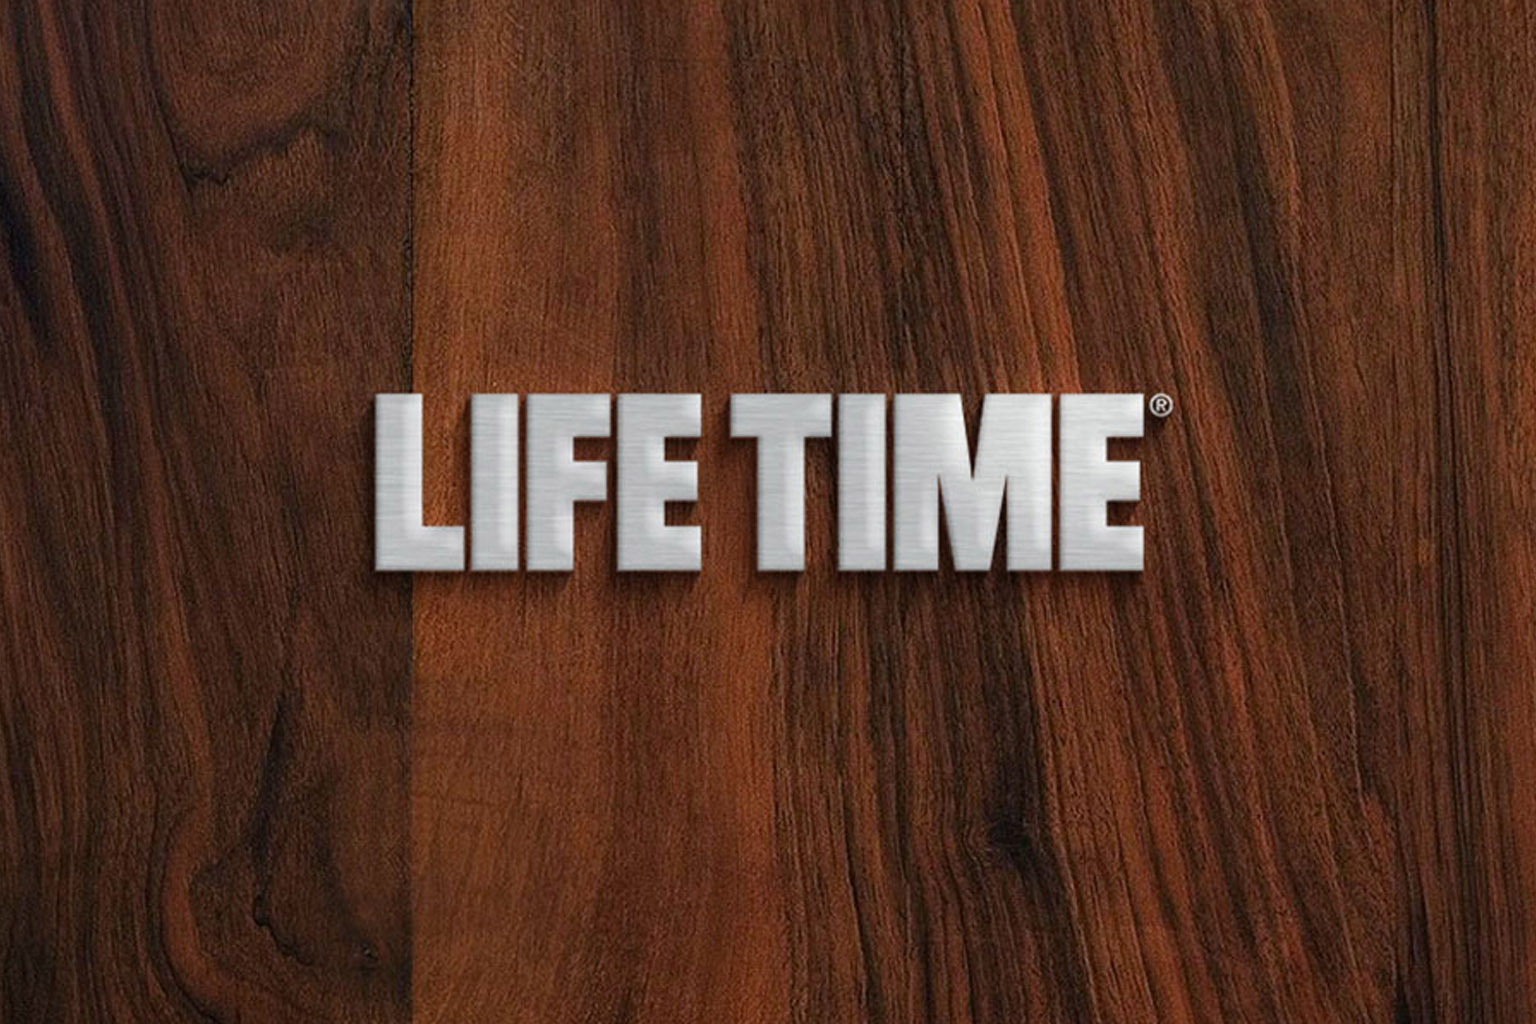 Silver Life Time master logo on a wood background